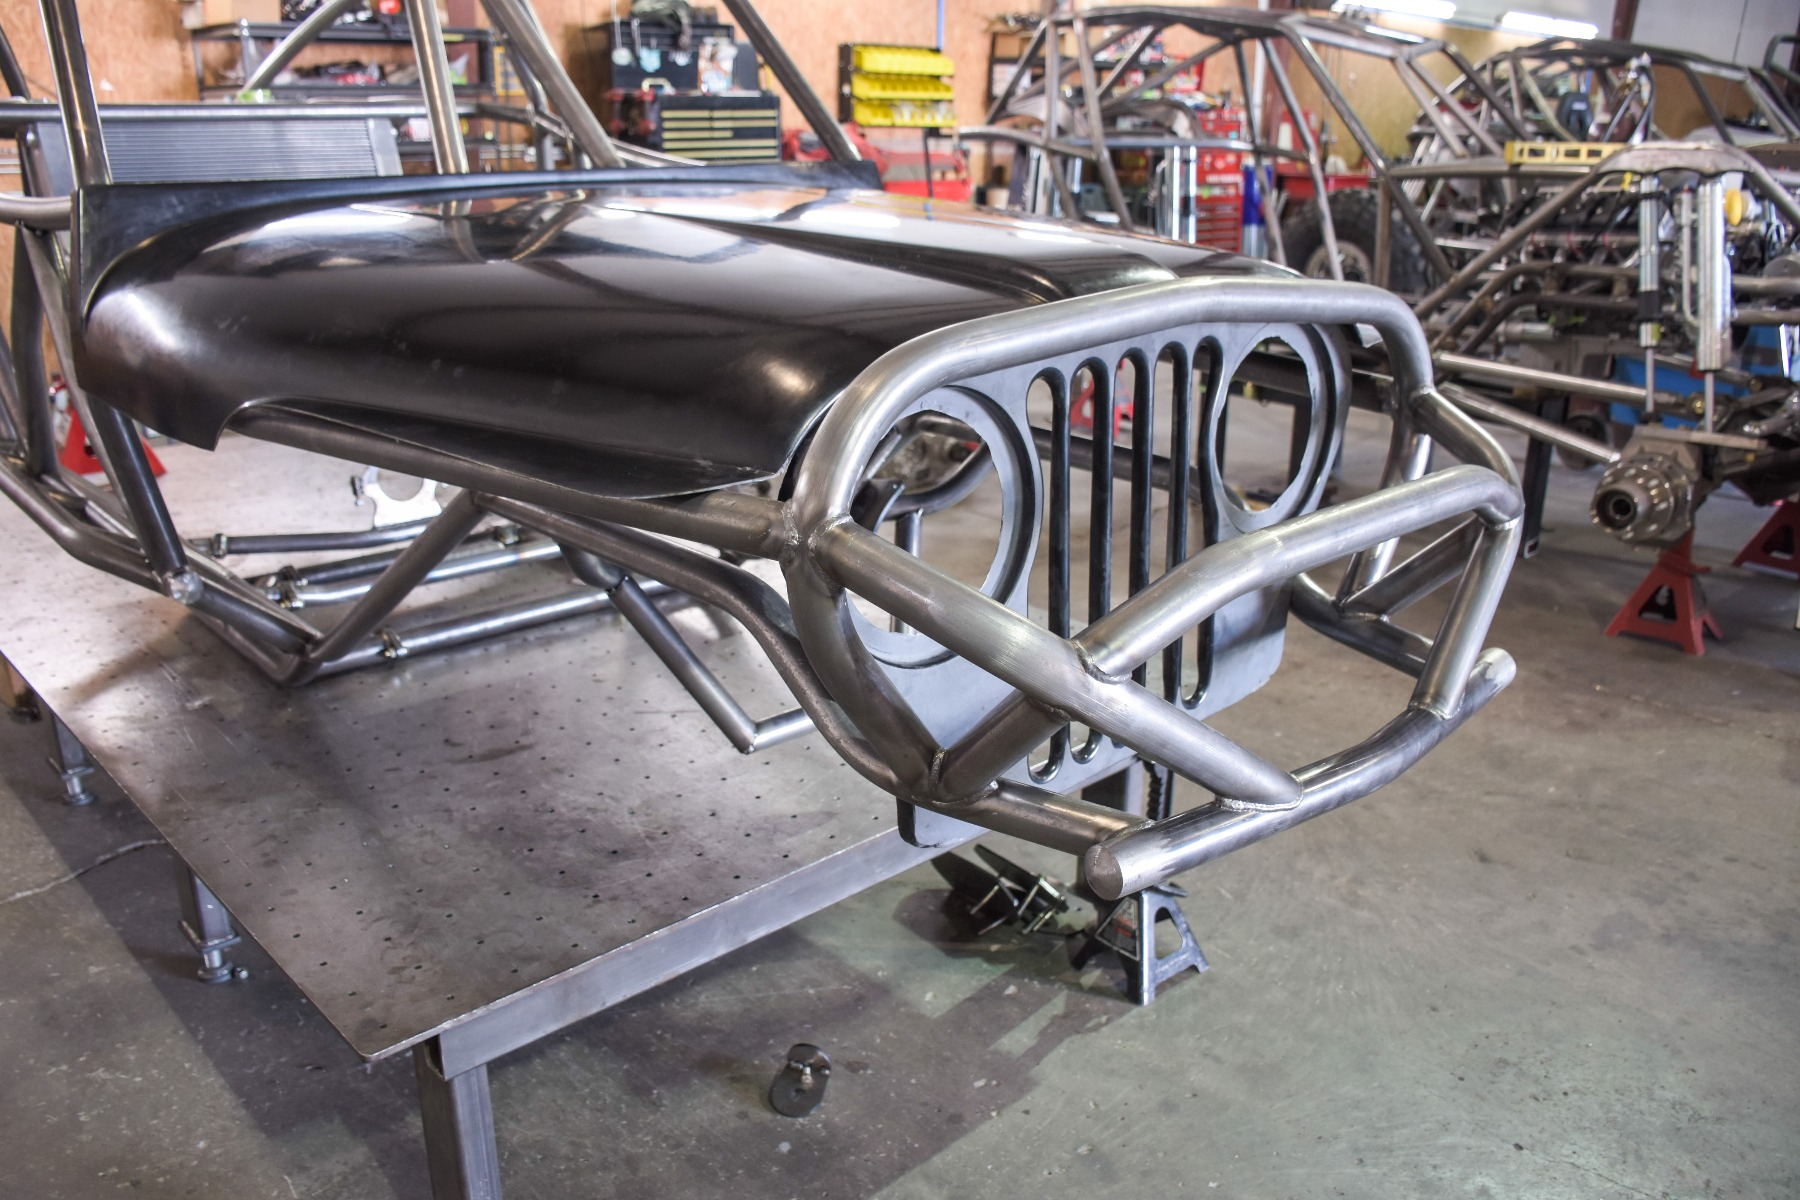 Wide Open Design Evolution Rock Crawler chassis with jeep hood and grill front detail 15